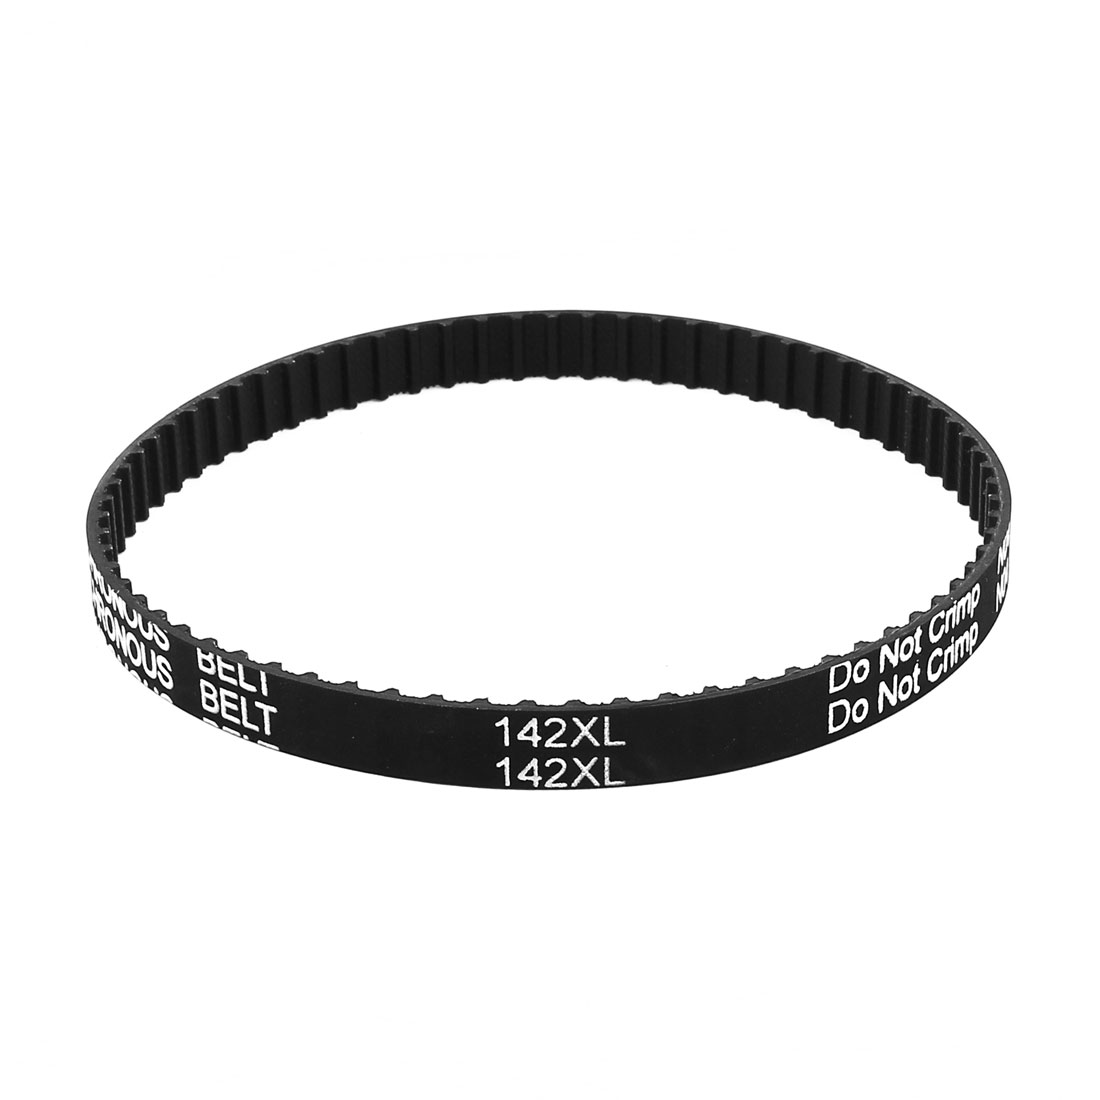 142XL 037 71T 9.5mm Width 5.08mm Pitch Rubber Industrial Timing Belt